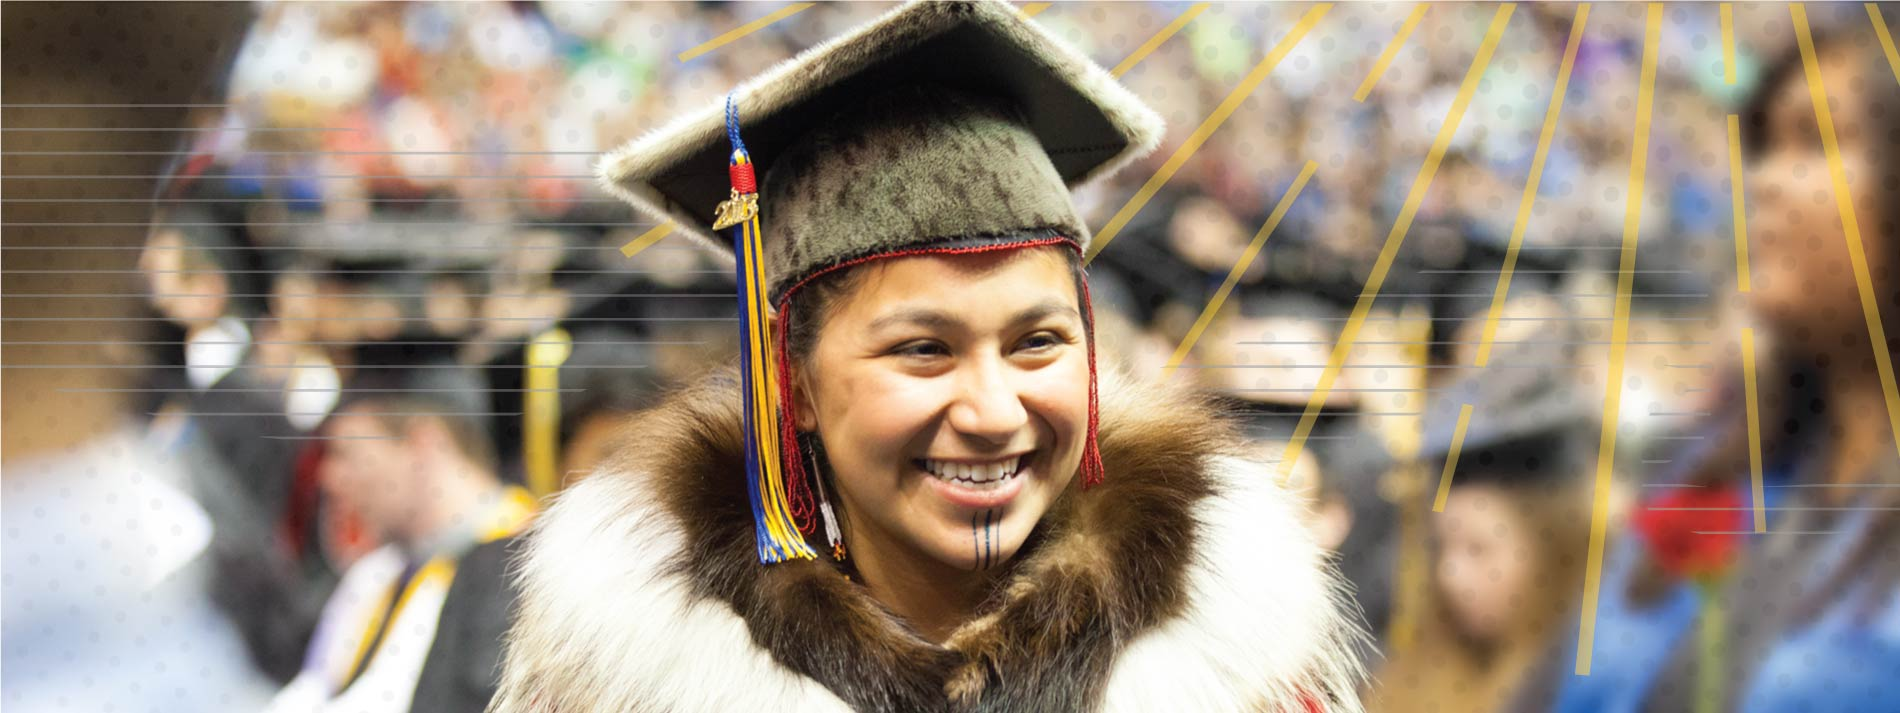 Alaska Native woman in regalia at UAF commencement